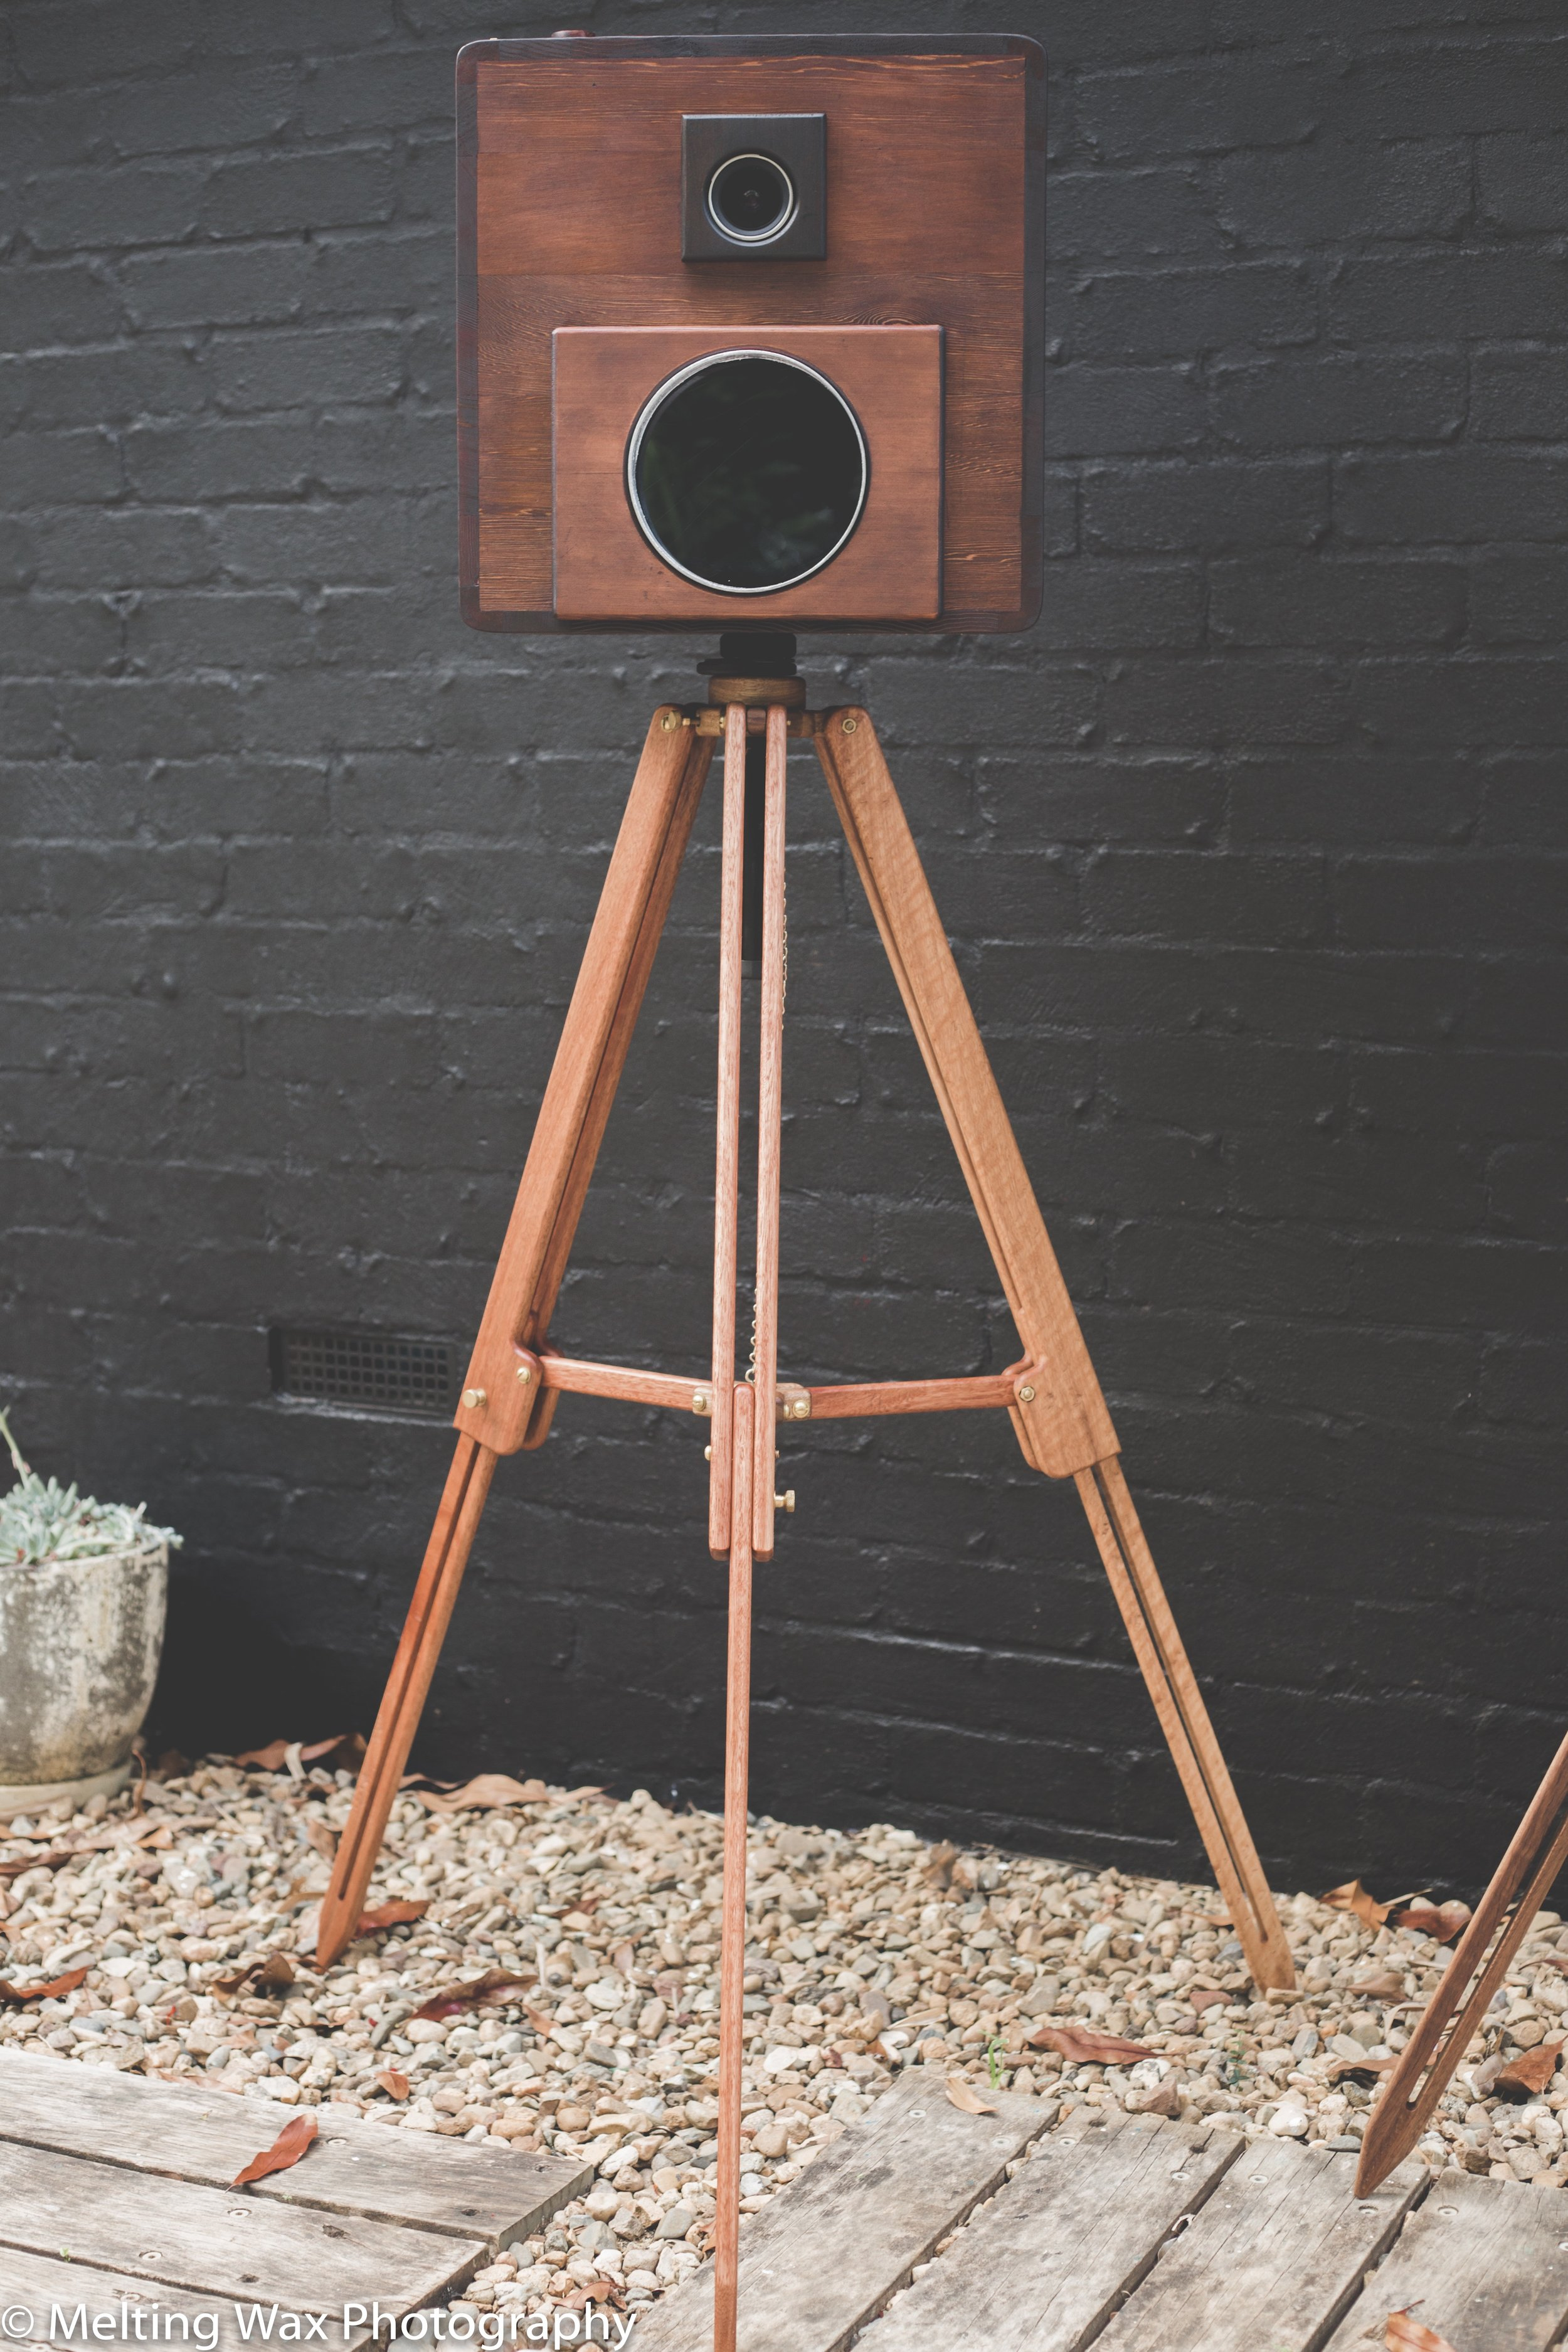 Photobooth designed and made by Leaf Handcrafted Furniture